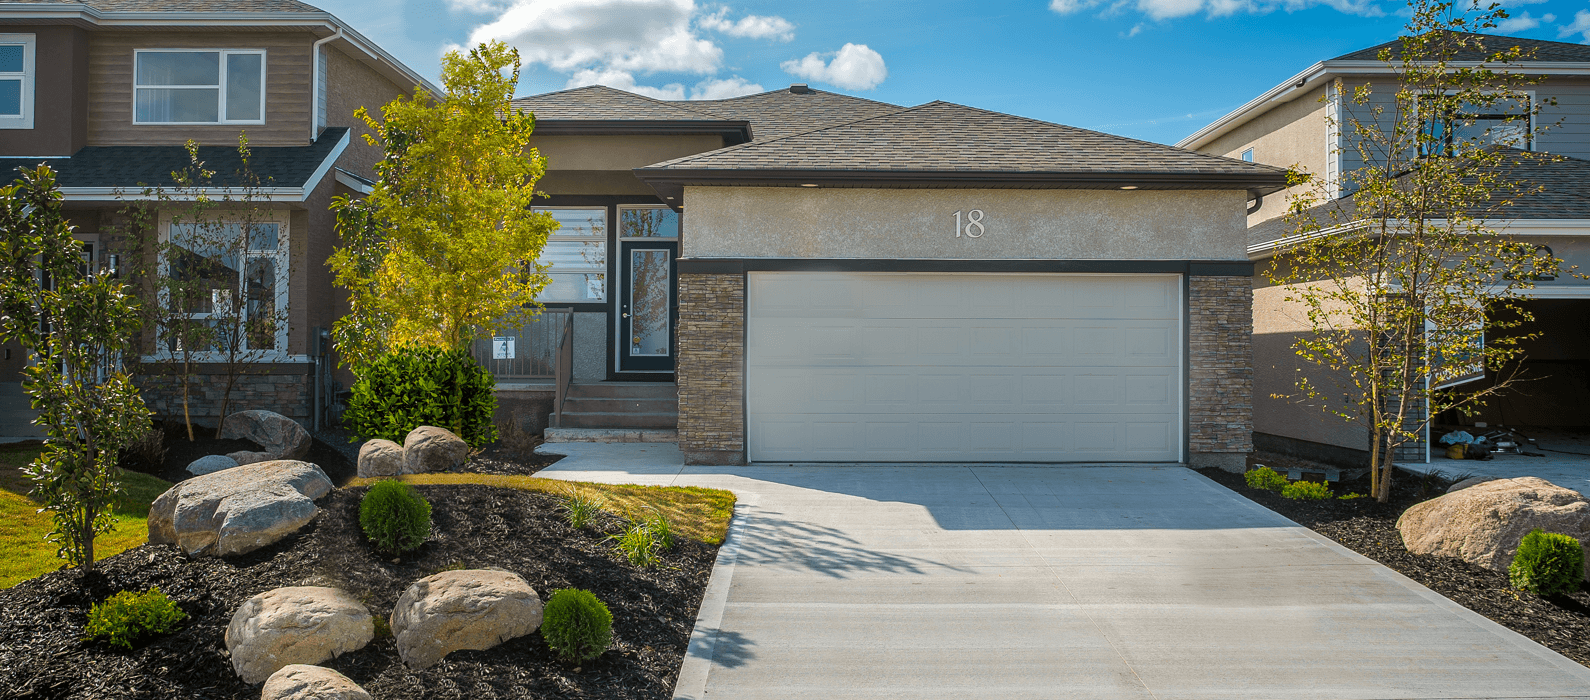 Move In Ready Home: 18 Red Sky Road Featured Image